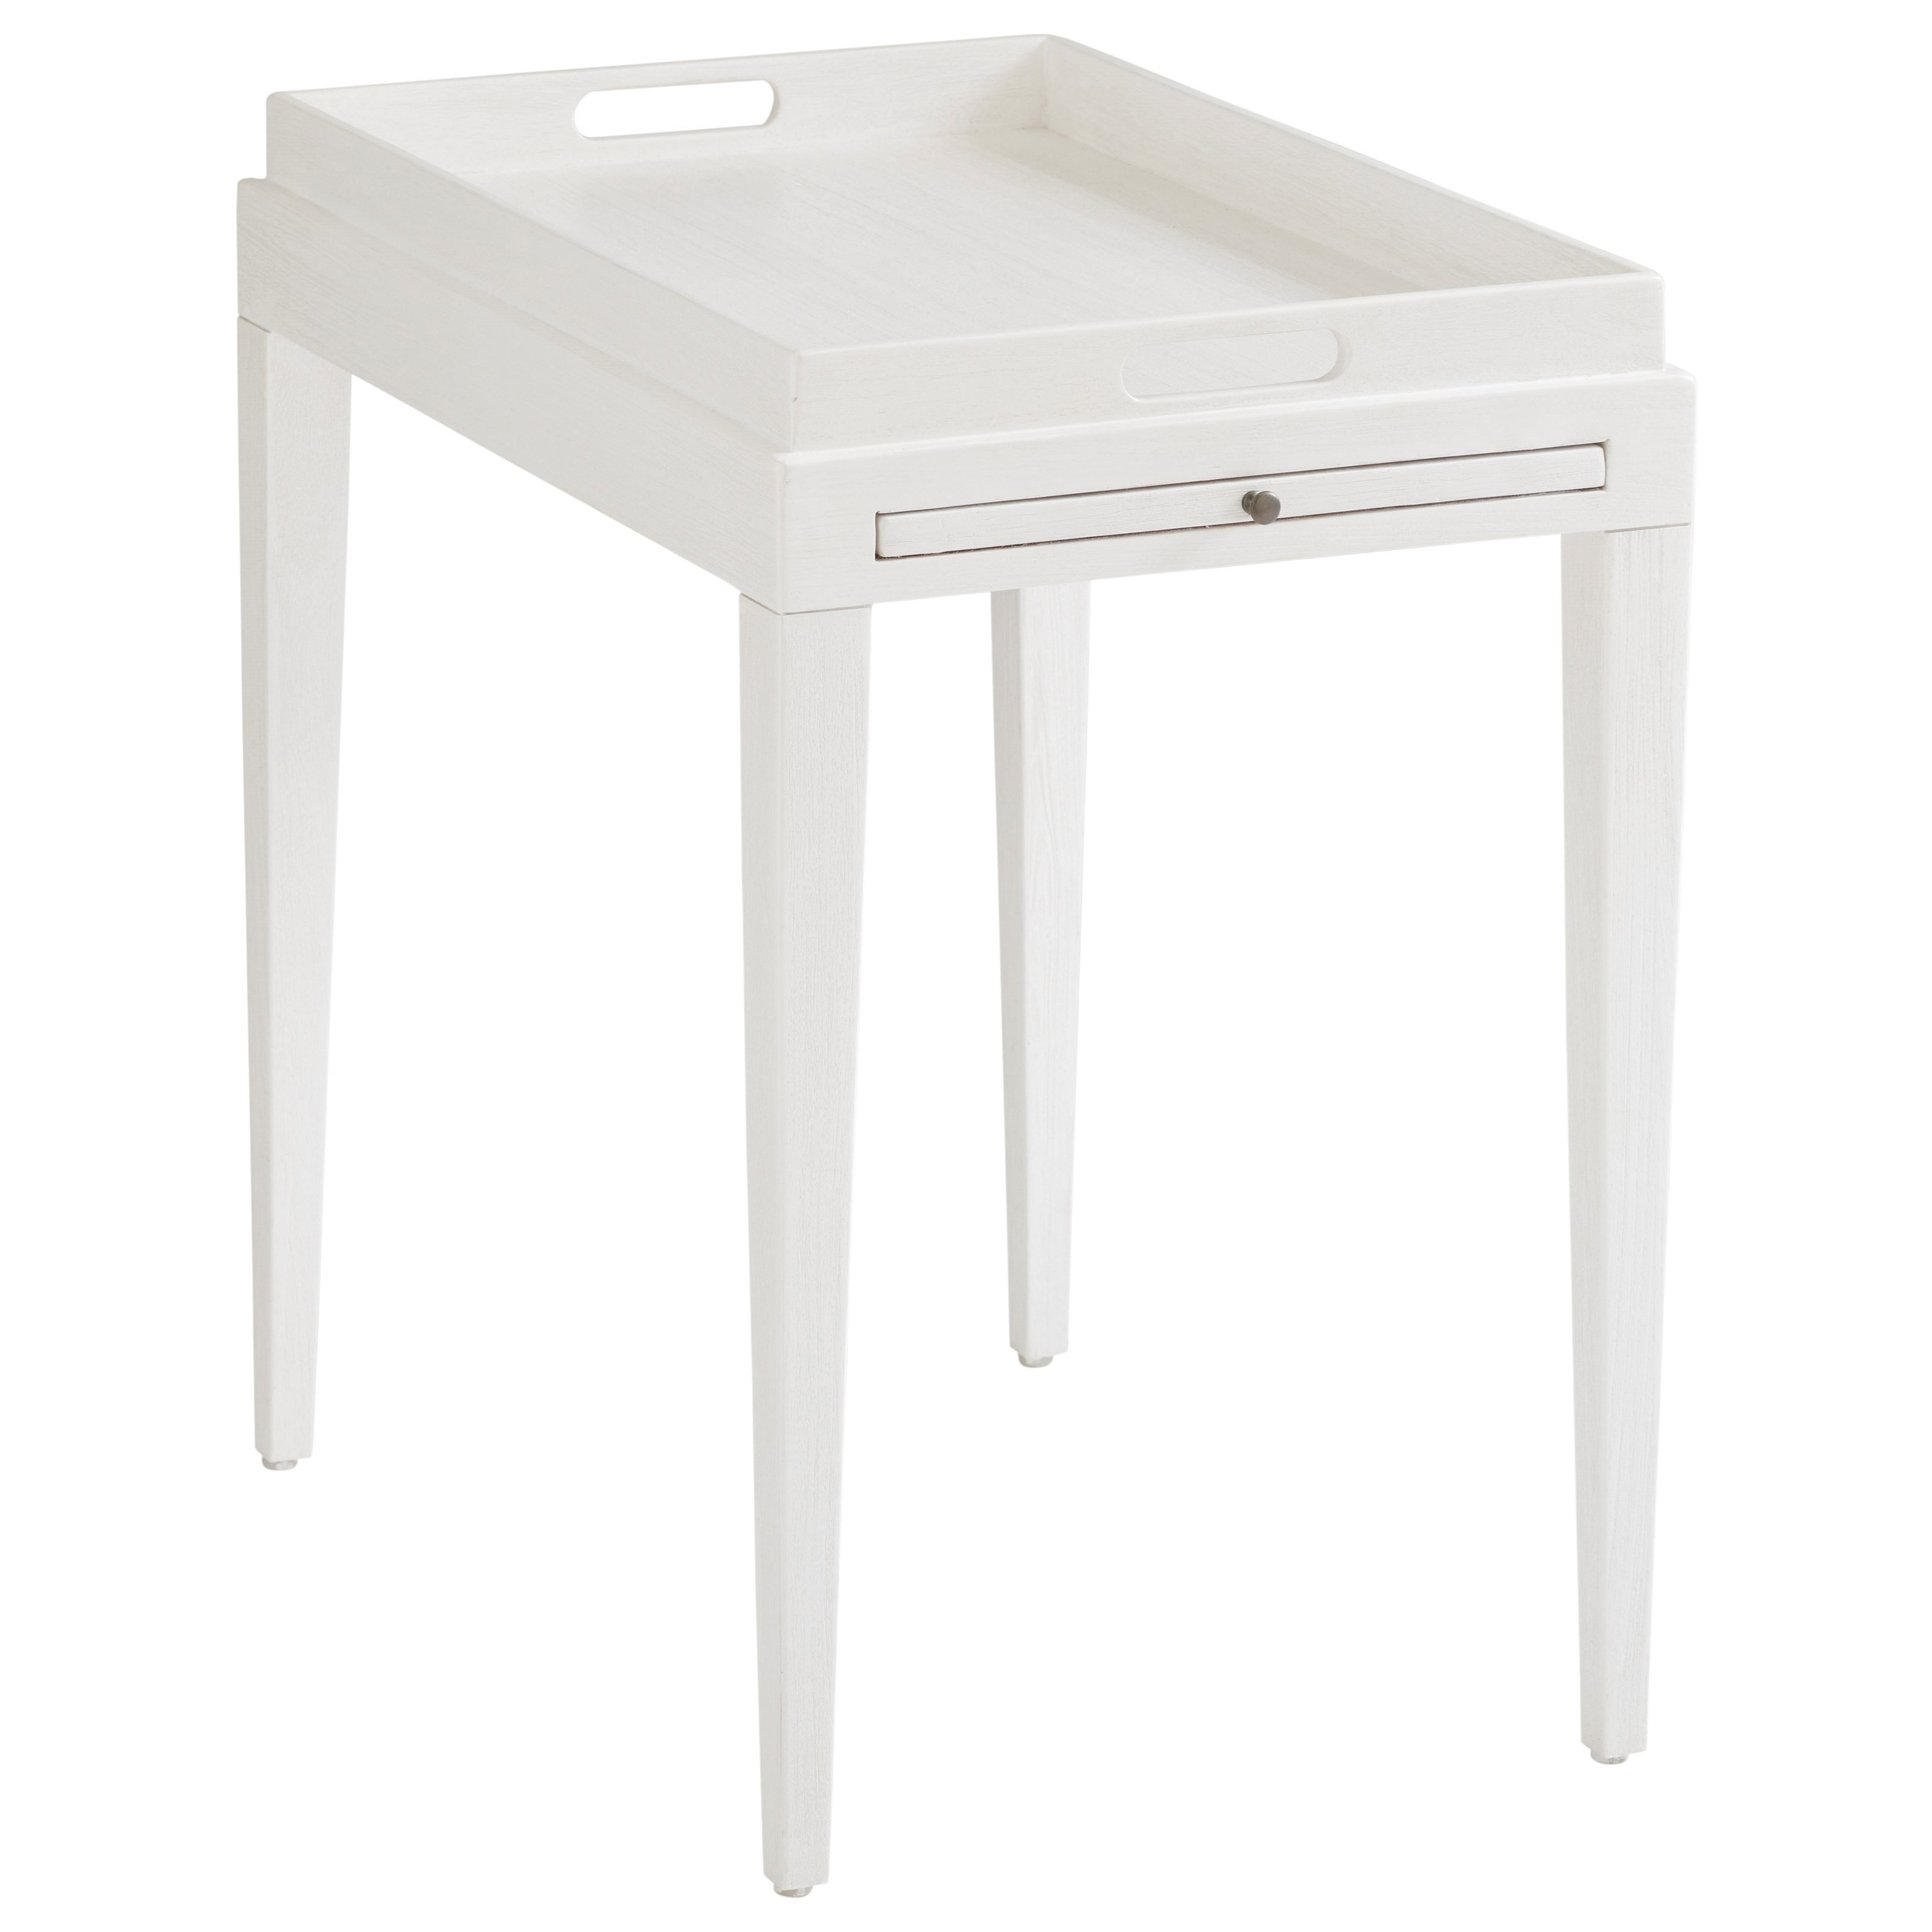 Ocean Breeze Broad River Rectangular End Table by Tommy Bahama Home at C. S. Wo & Sons Hawaii